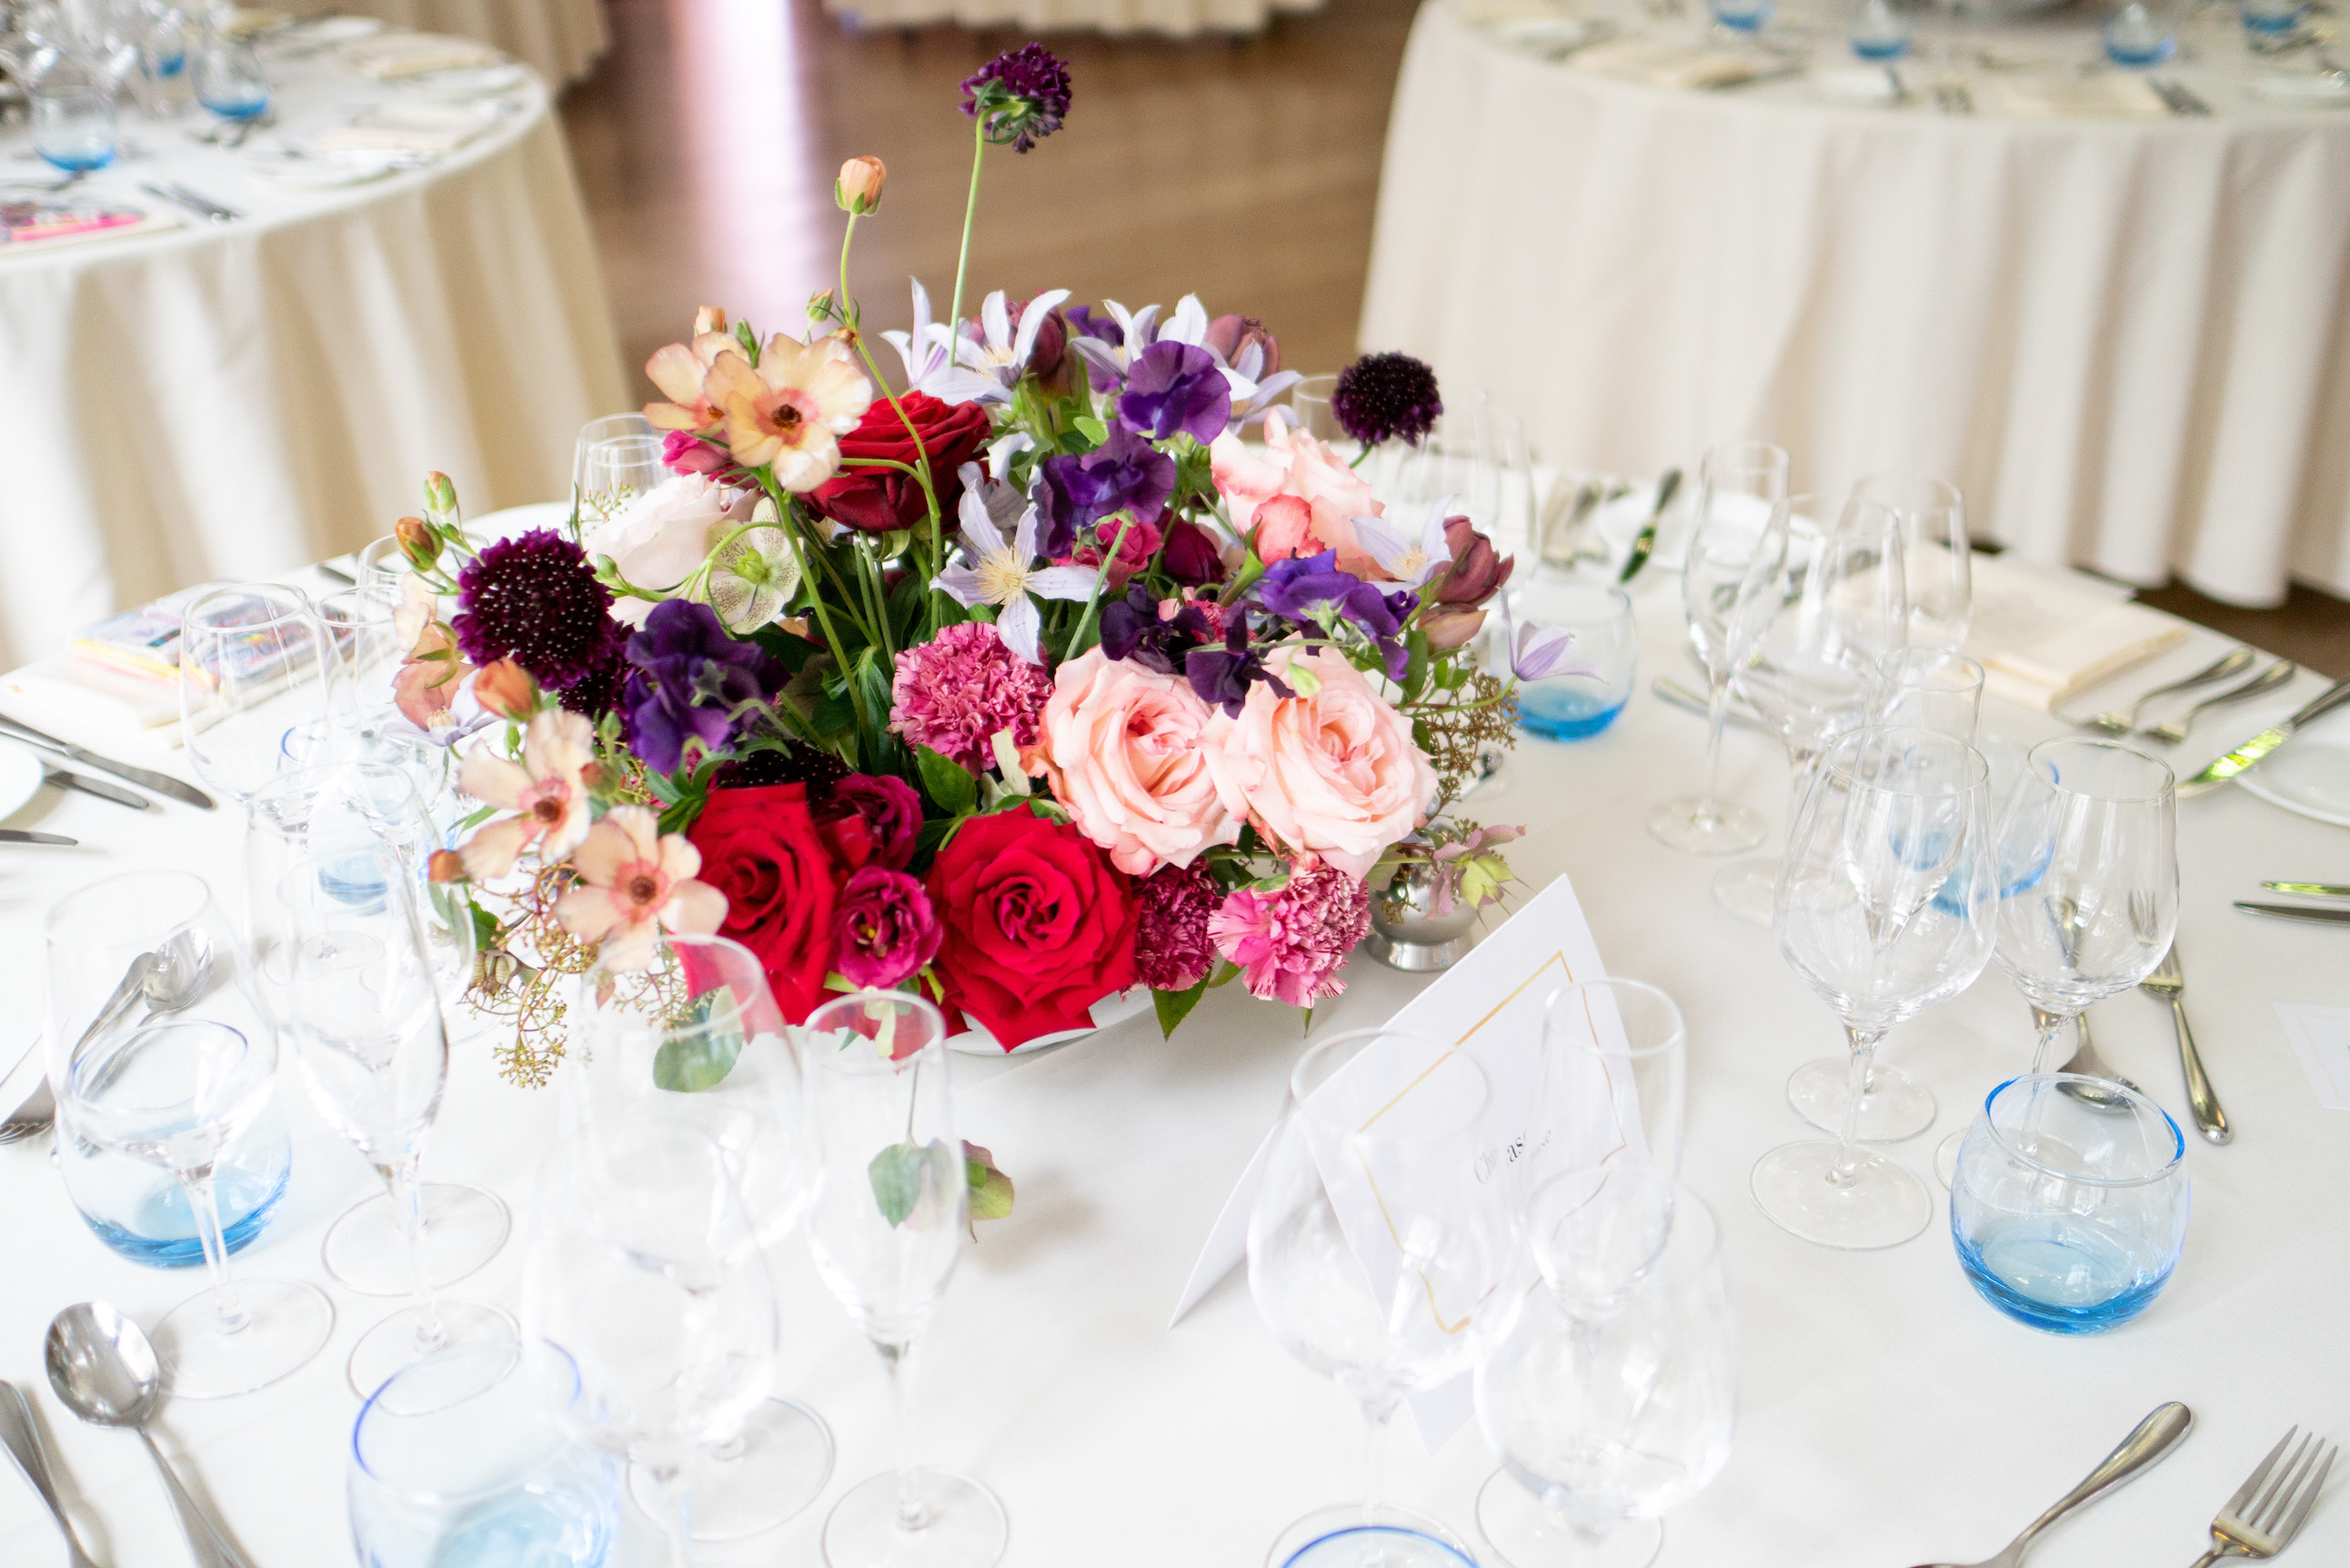 A modern interpretation on a classic centrepiece. Fragrant sweet peas, anemones, garden roses, scabiosas.